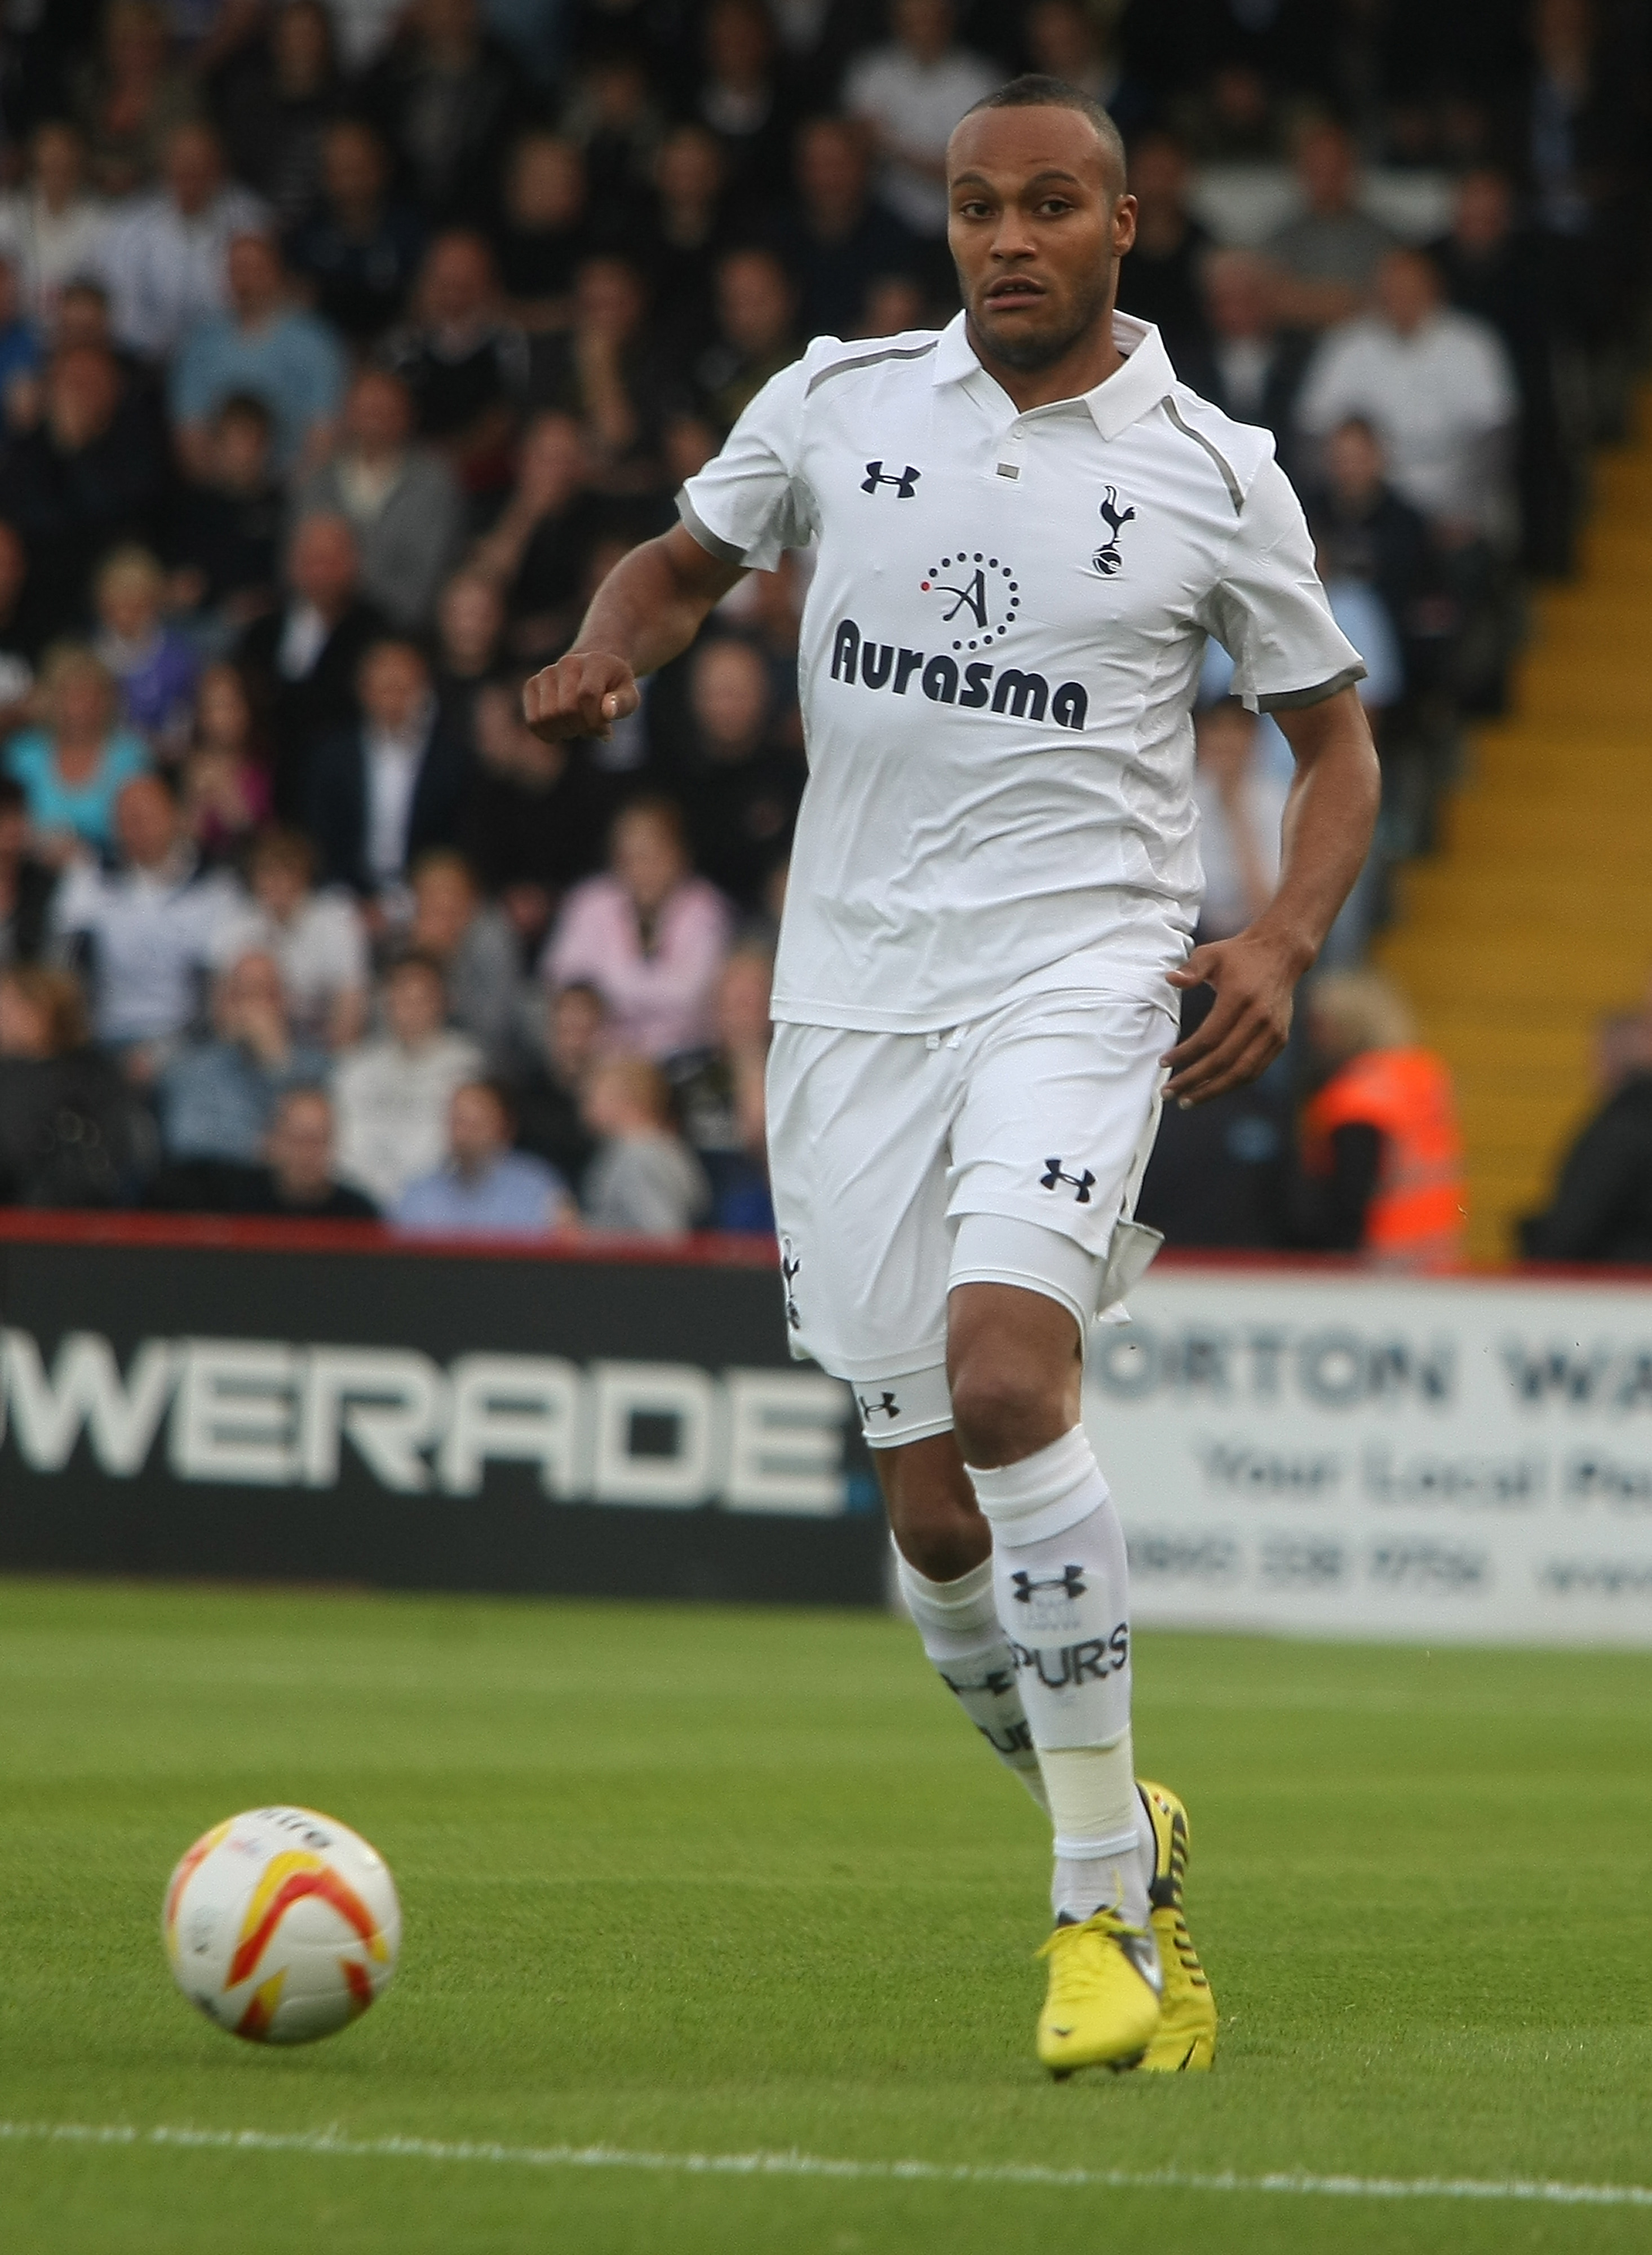 STEVENAGE, ENGLAND - JULY 18:  Younes Kaboul of Tottenham Hotspur in action during the Pre Season Friendly match between Stevenage and Tottenham Hotspur at The Lamex Stadium on July 18, 2012 in Stevenage, England.  (Photo by Pete Norton/Getty Images)